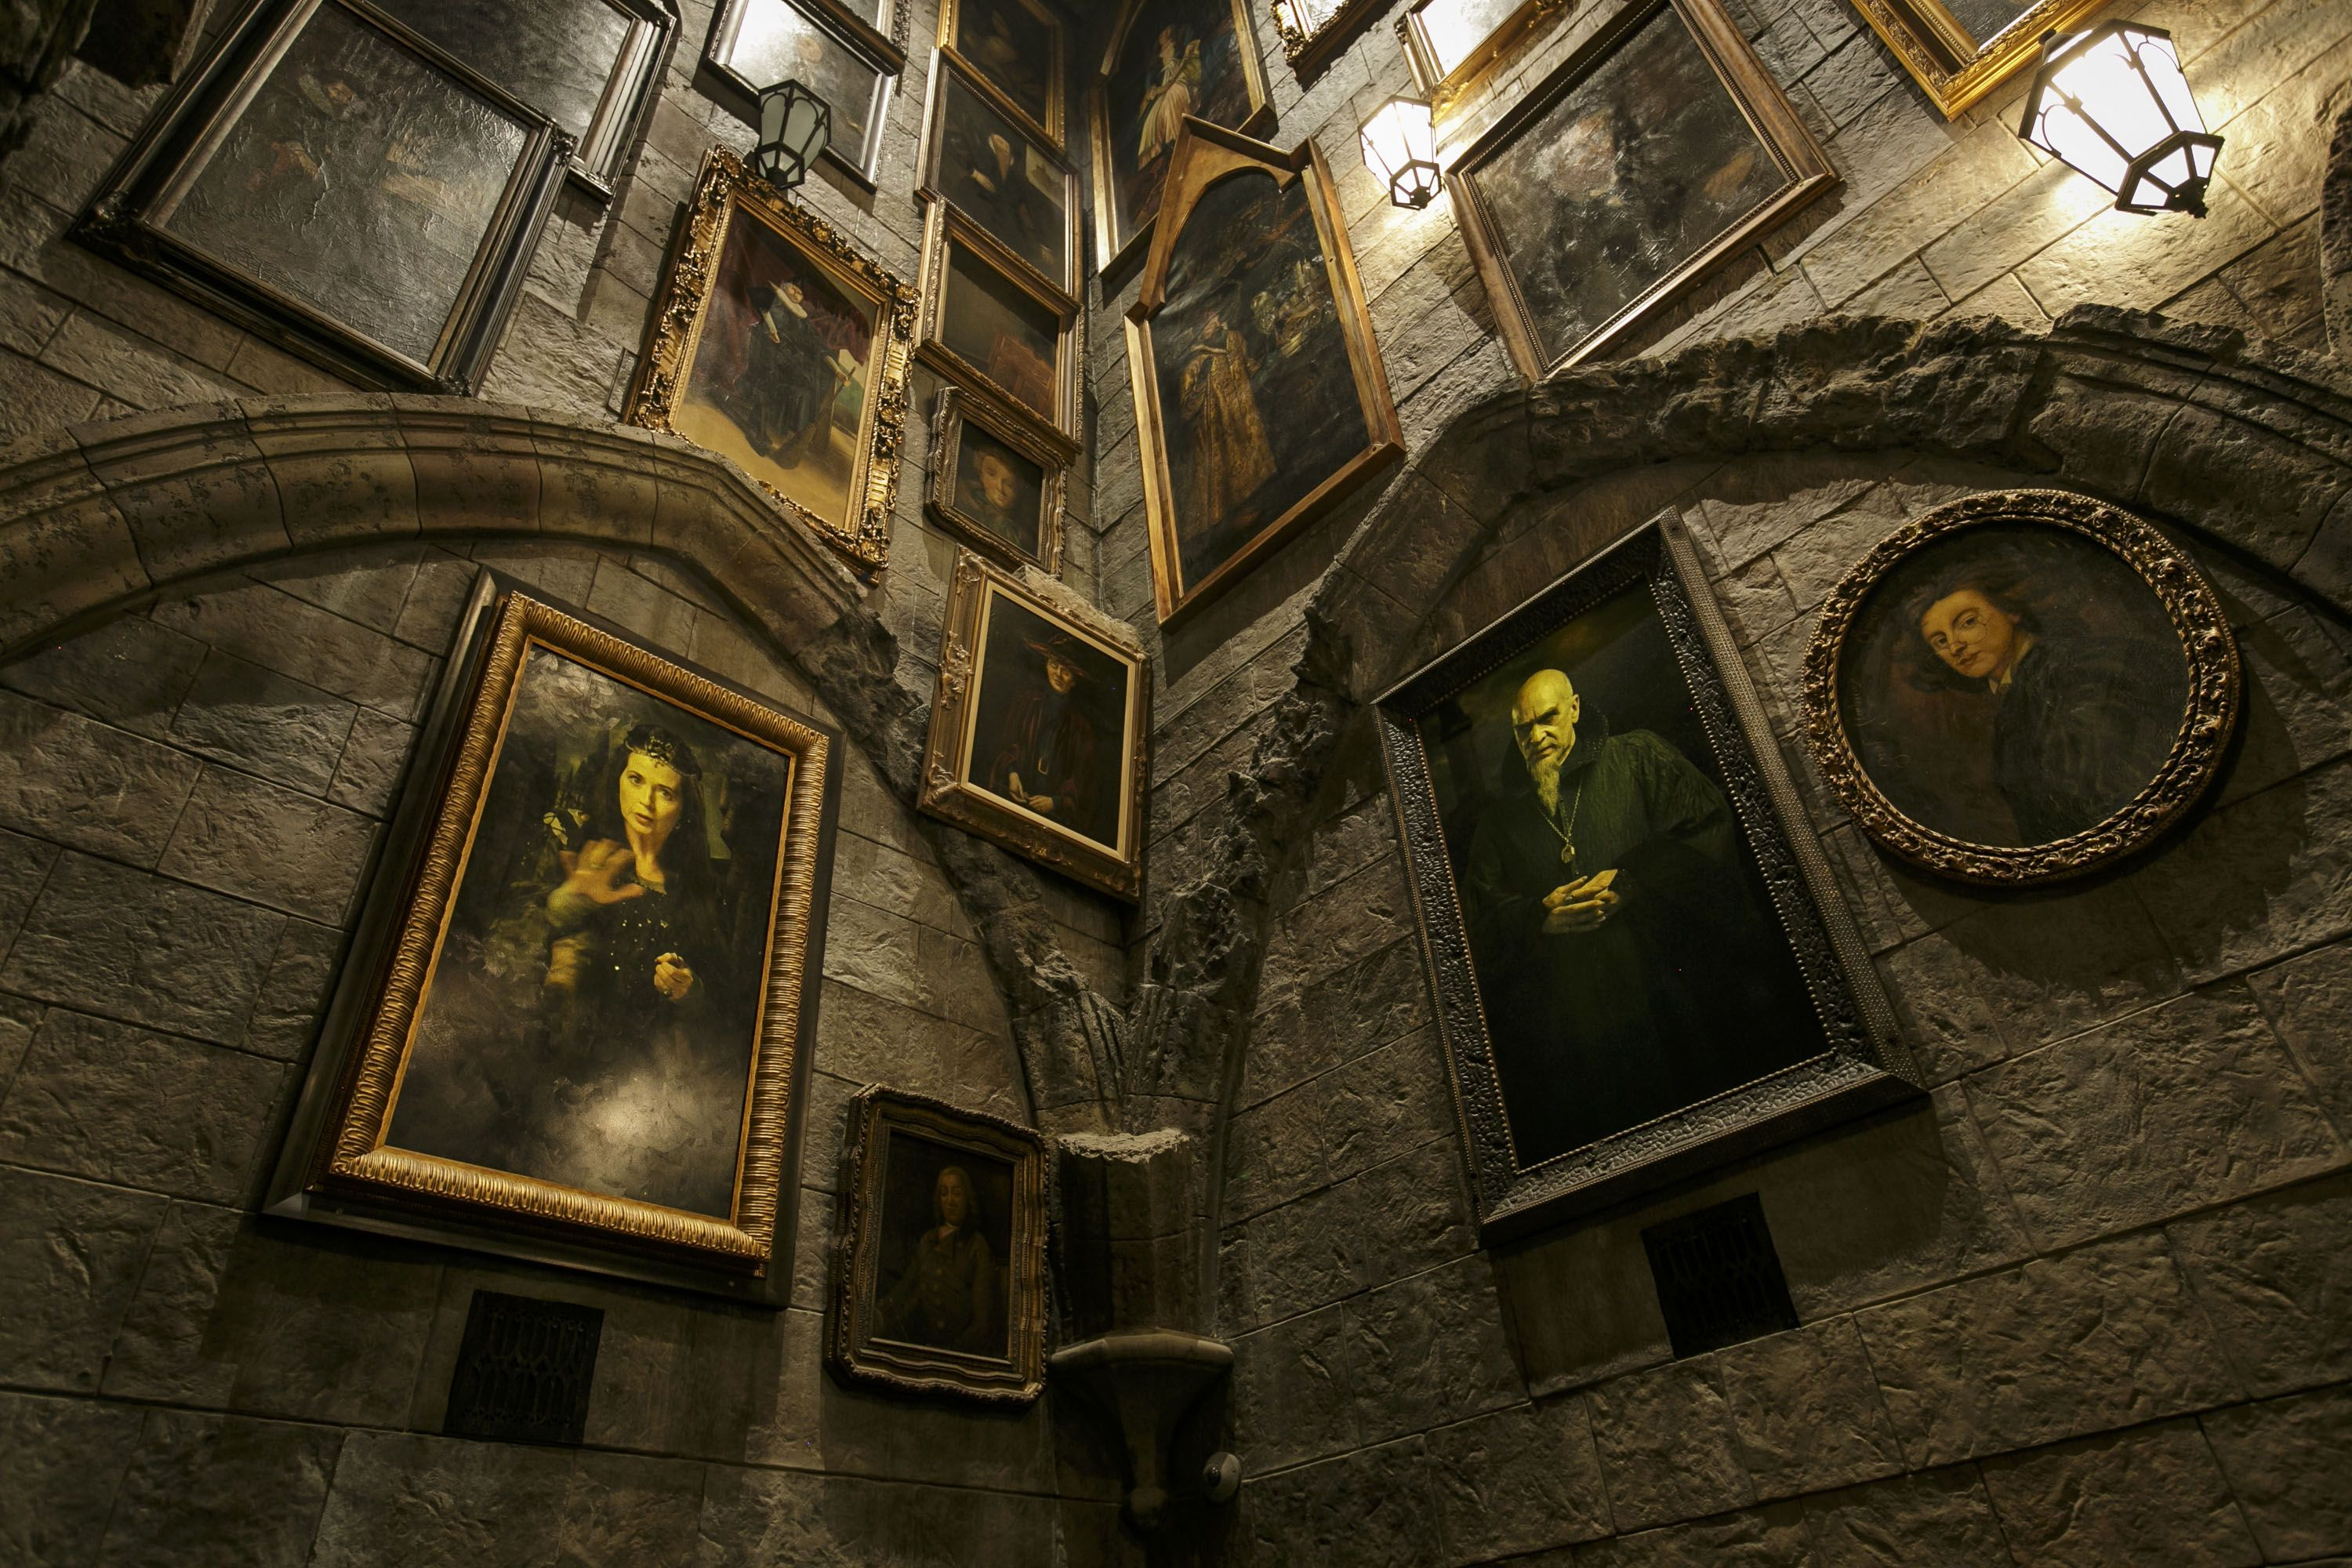 8 Insanely Cool And Secret Facts About The Wizarding World Of Harry Potter In La Harry Potter Universal Wizarding World Of Harry Potter Harry Potter Universal Studios